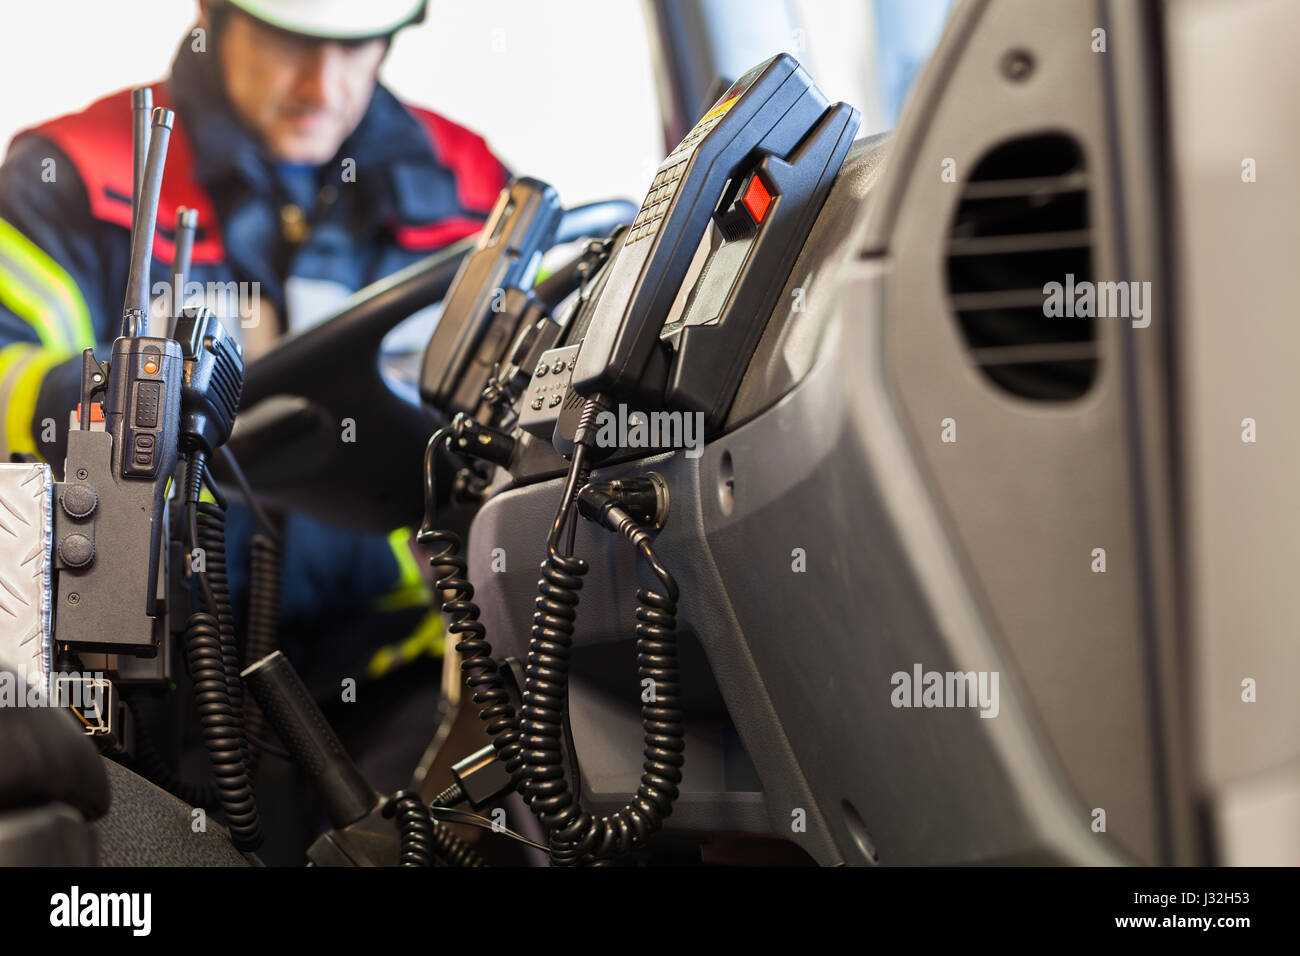 Firefighter drives a emergency vehicle with communication interior view and trowel - Stock Image